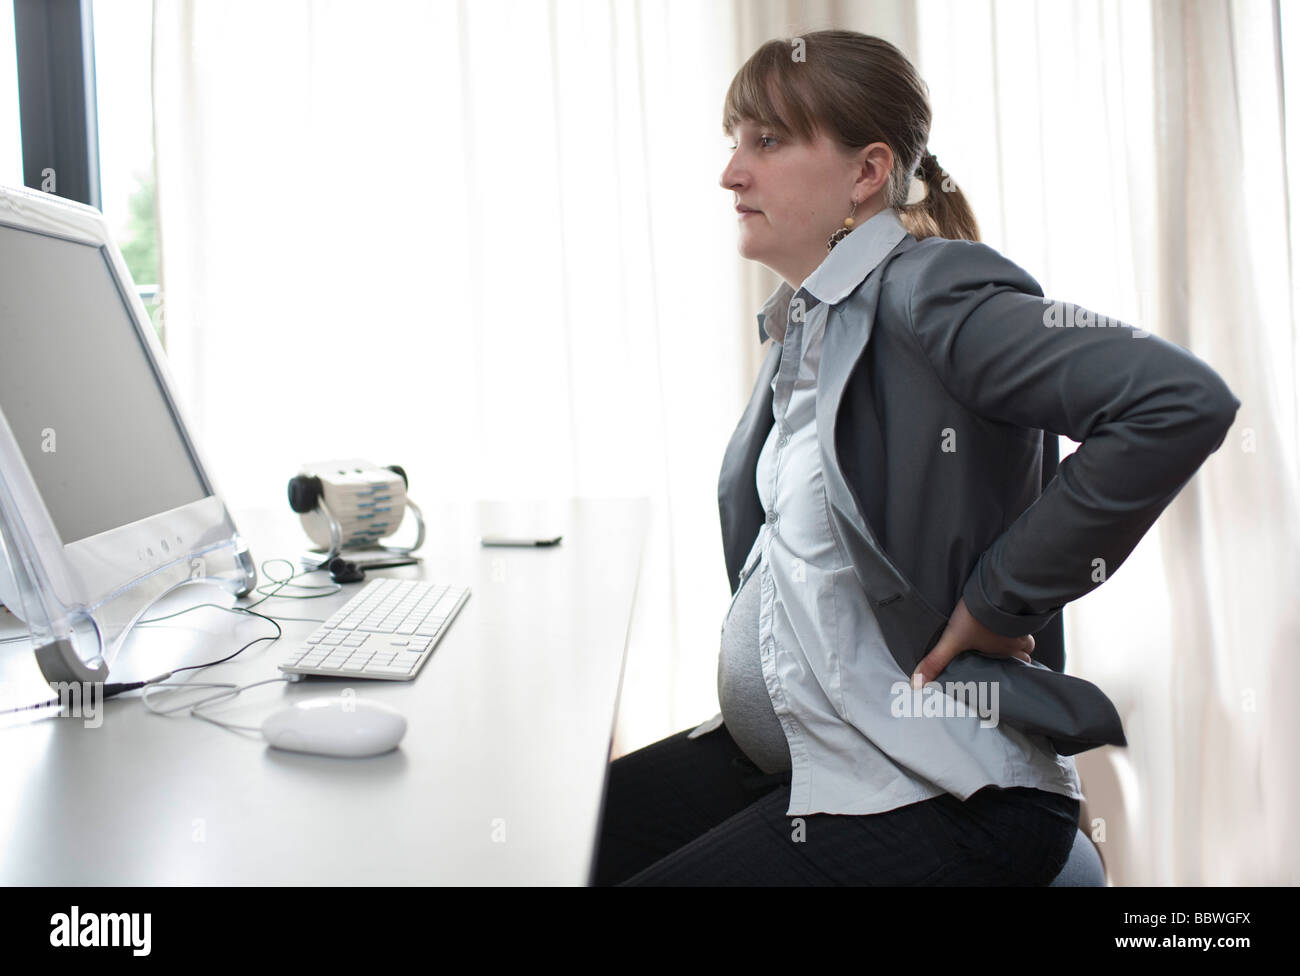 Pregnant woman working at a computer - Stock Image